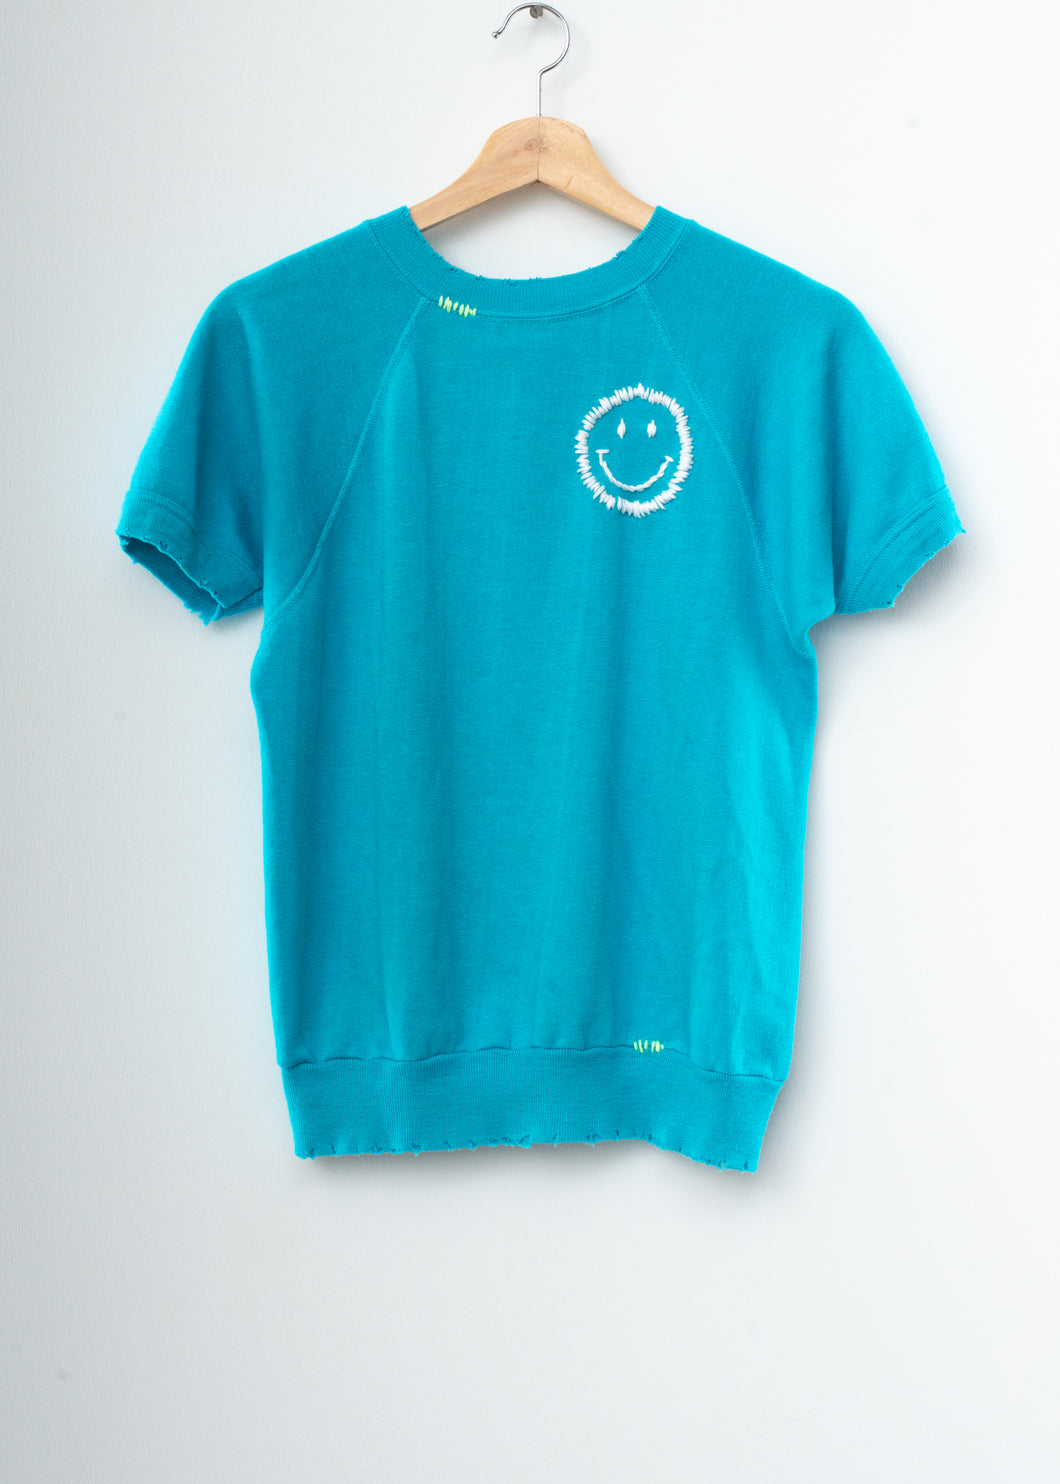 Happy Face Shorty Sweatshirt - Bright Blue